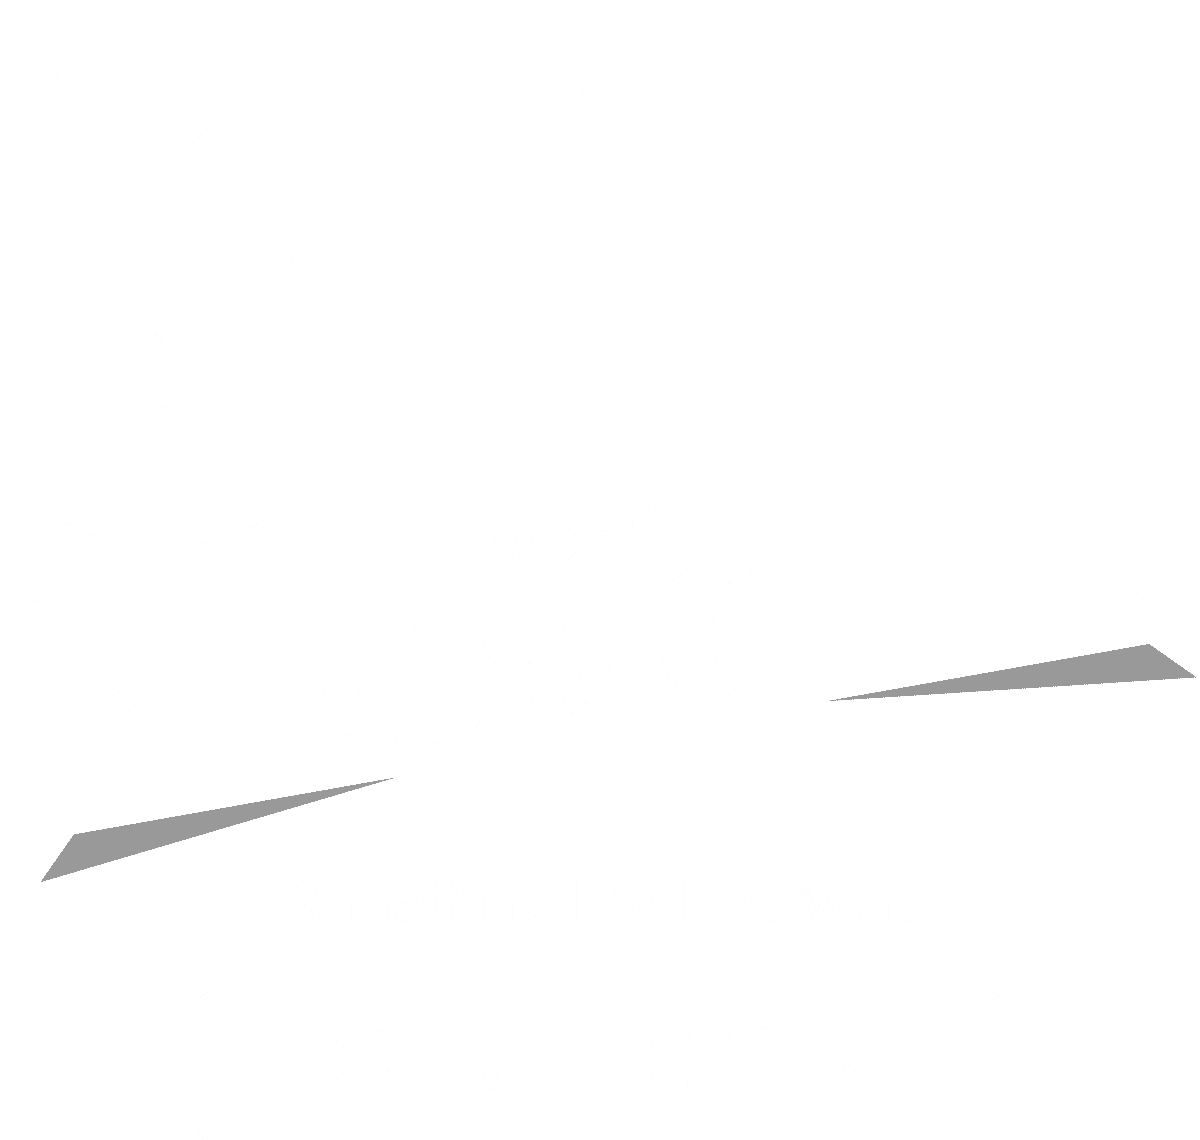 Up To 40% Off Online and In-Store